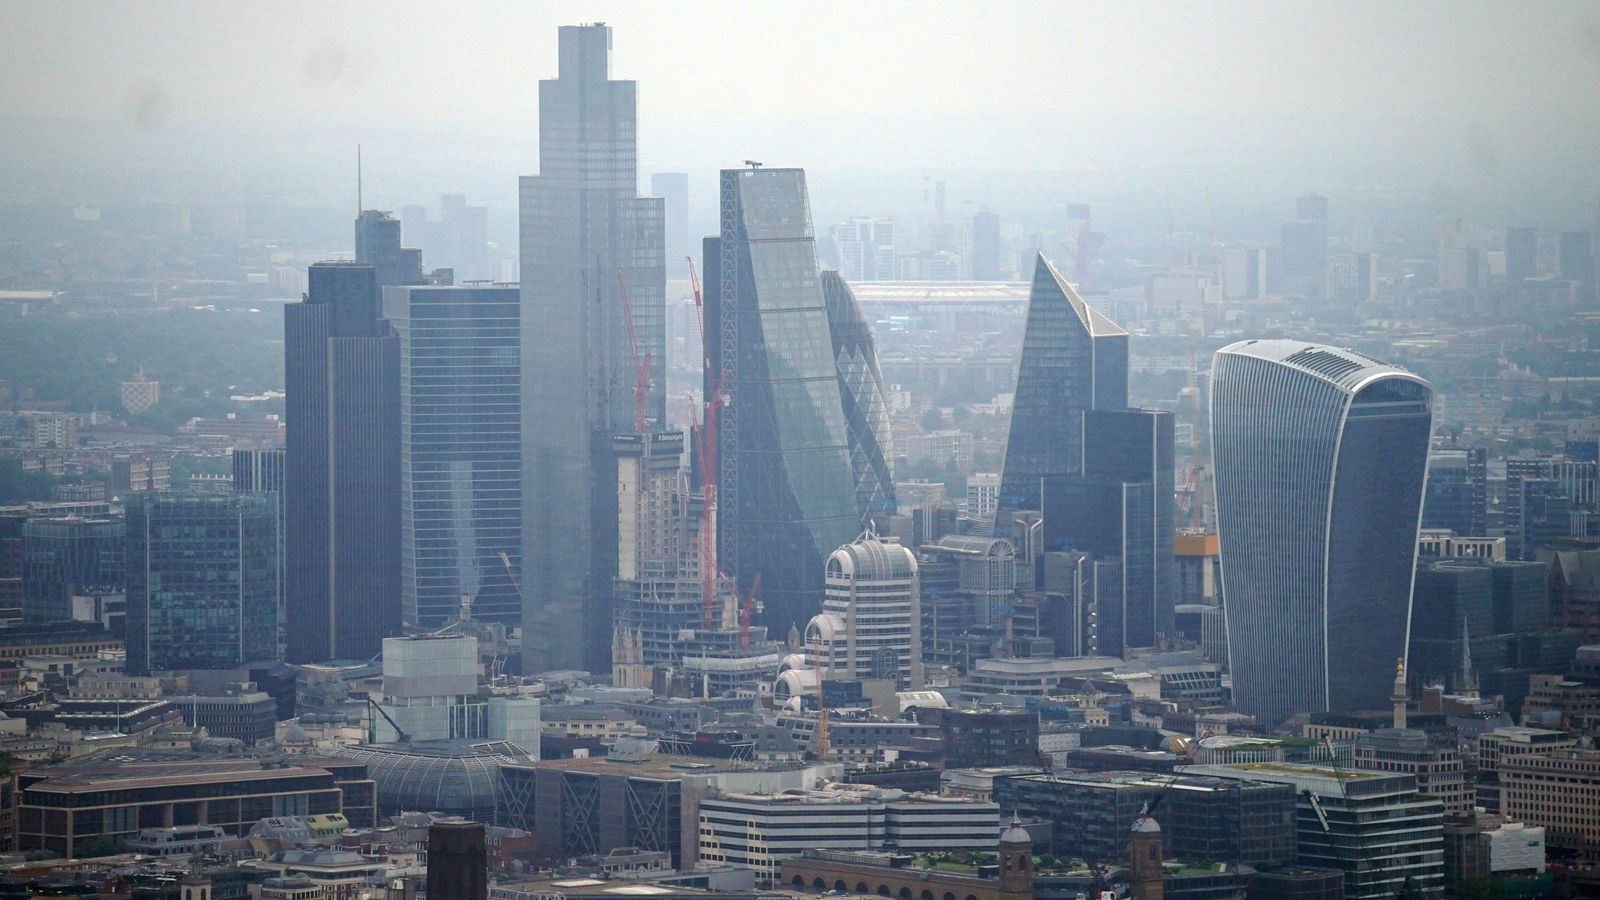 London retains second place behind New York in list of world's best financial hubs, latest research suggests